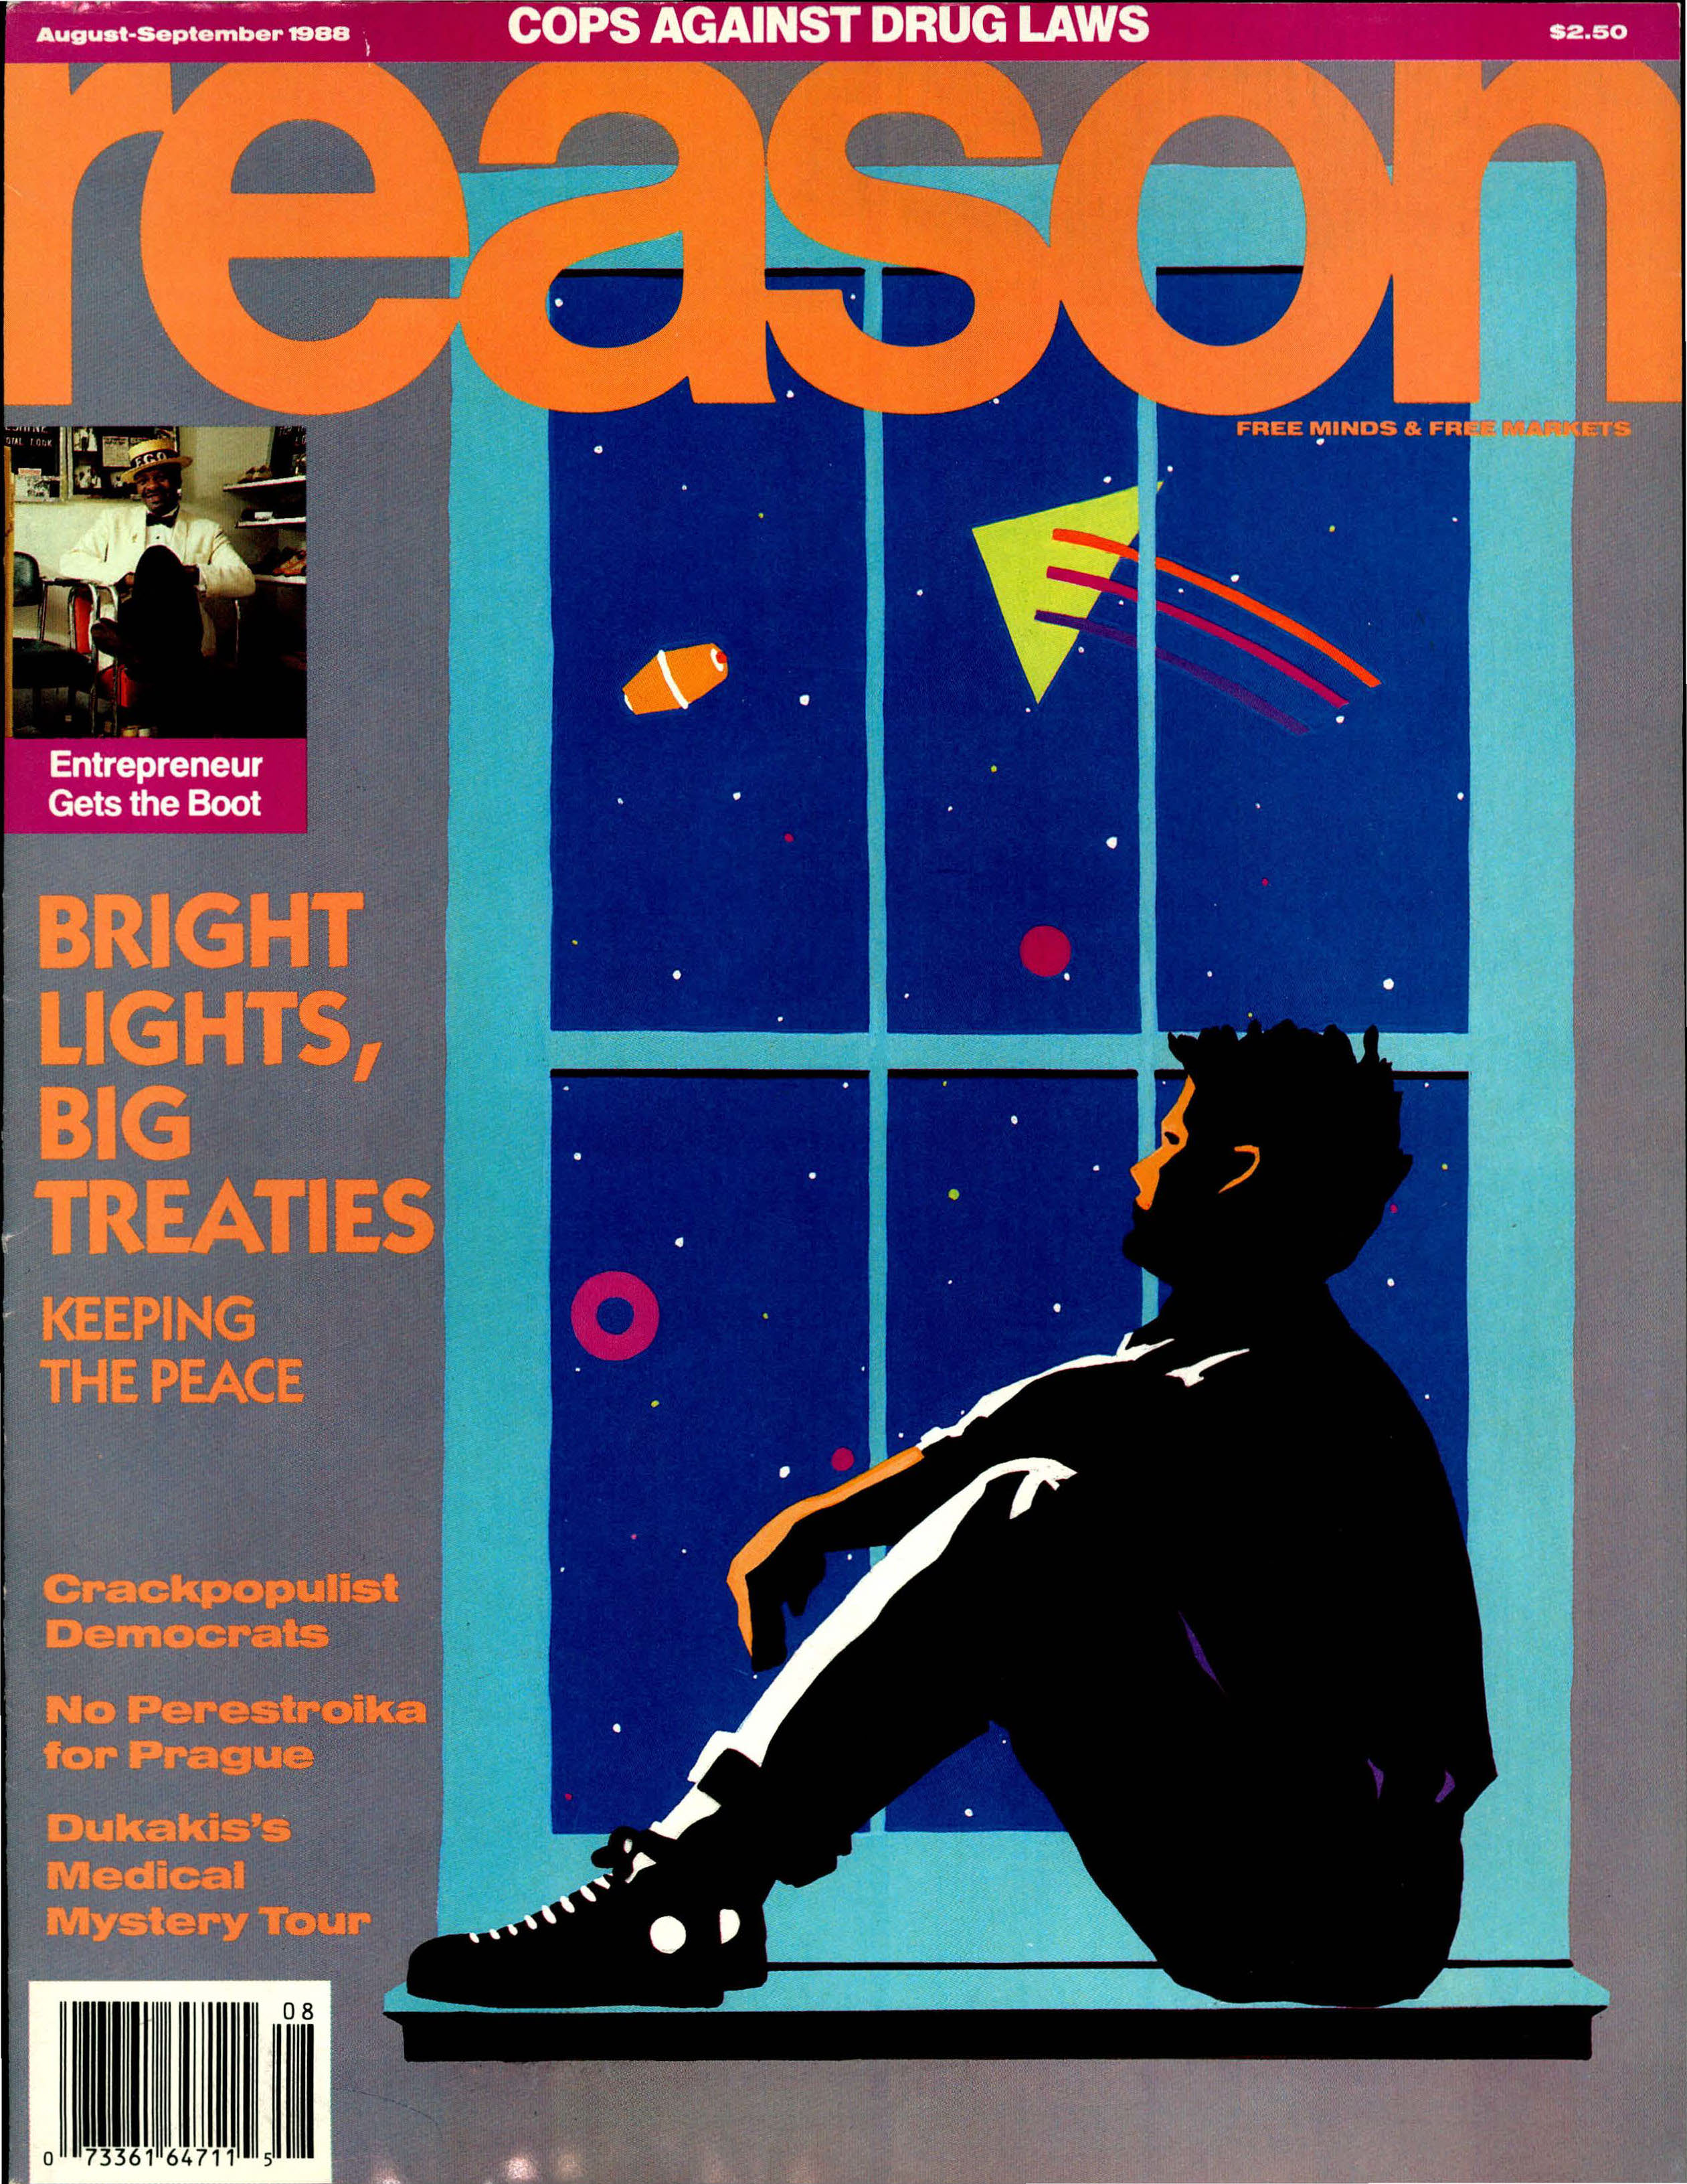 Reason Magazine, August/September 1988 cover image